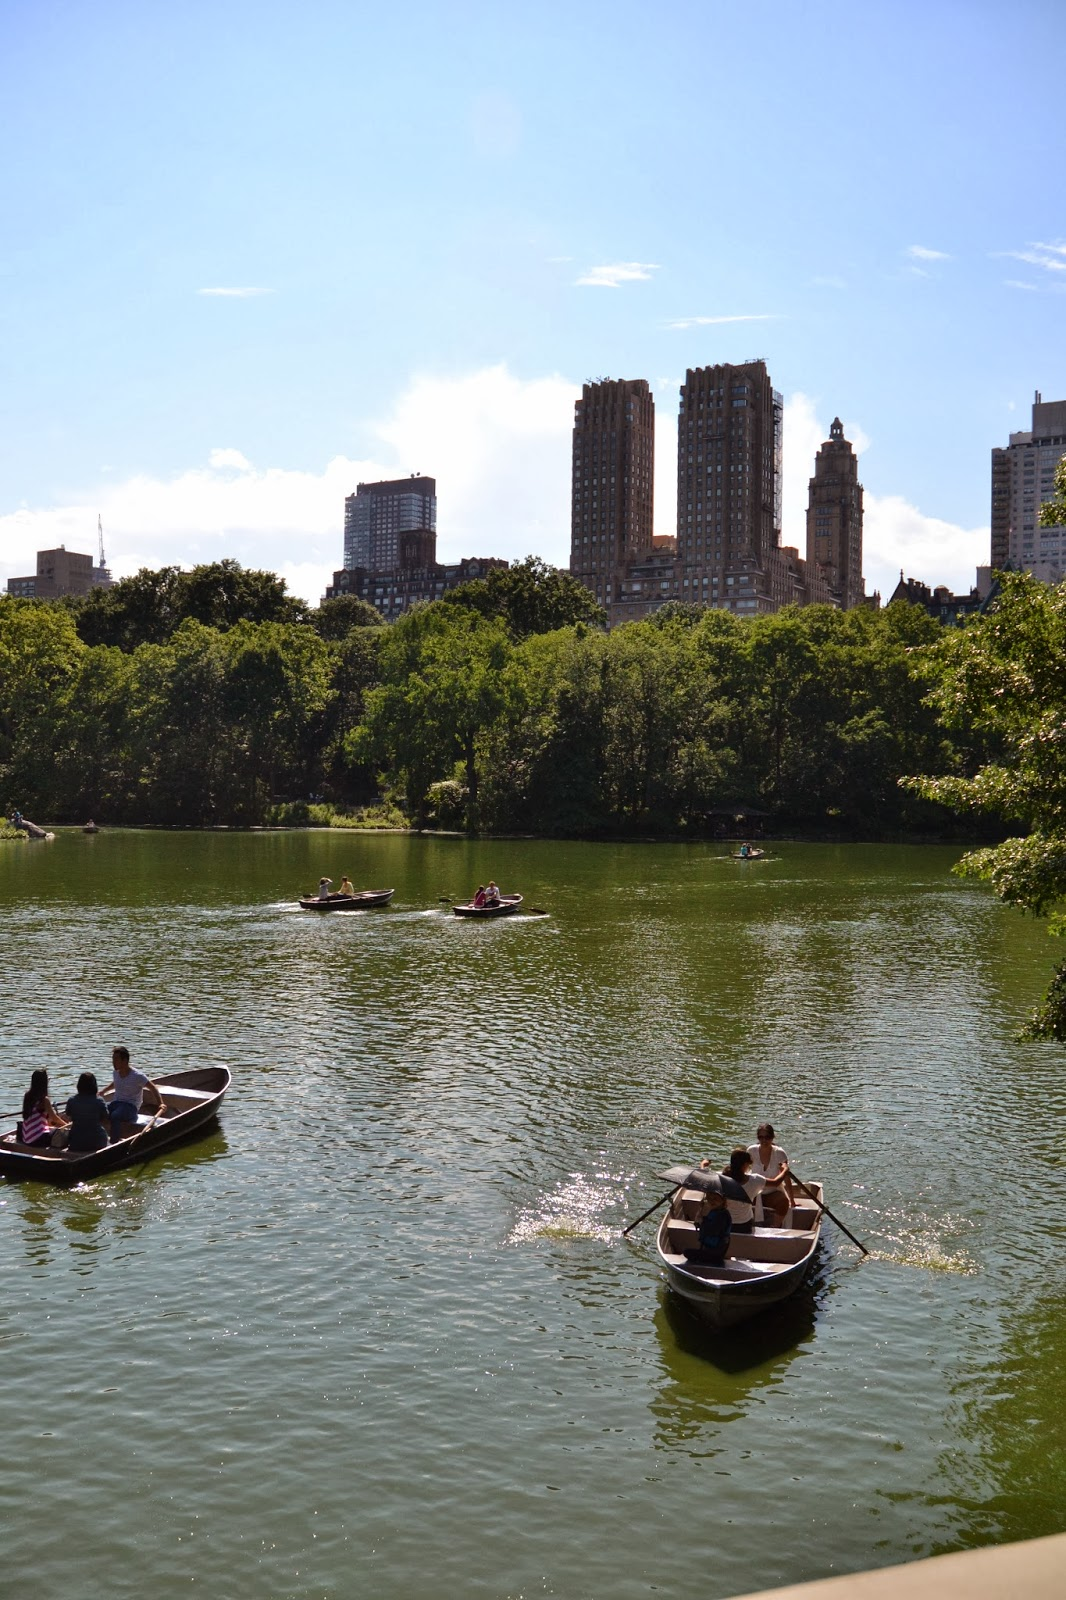 central park, lake, boating, plaza hotel, sunny day, summer, NYC, New York, 10 free things to do, free things to do in NYC, travel, New York, explore, adventures, photography, usa, tourism, tourists,